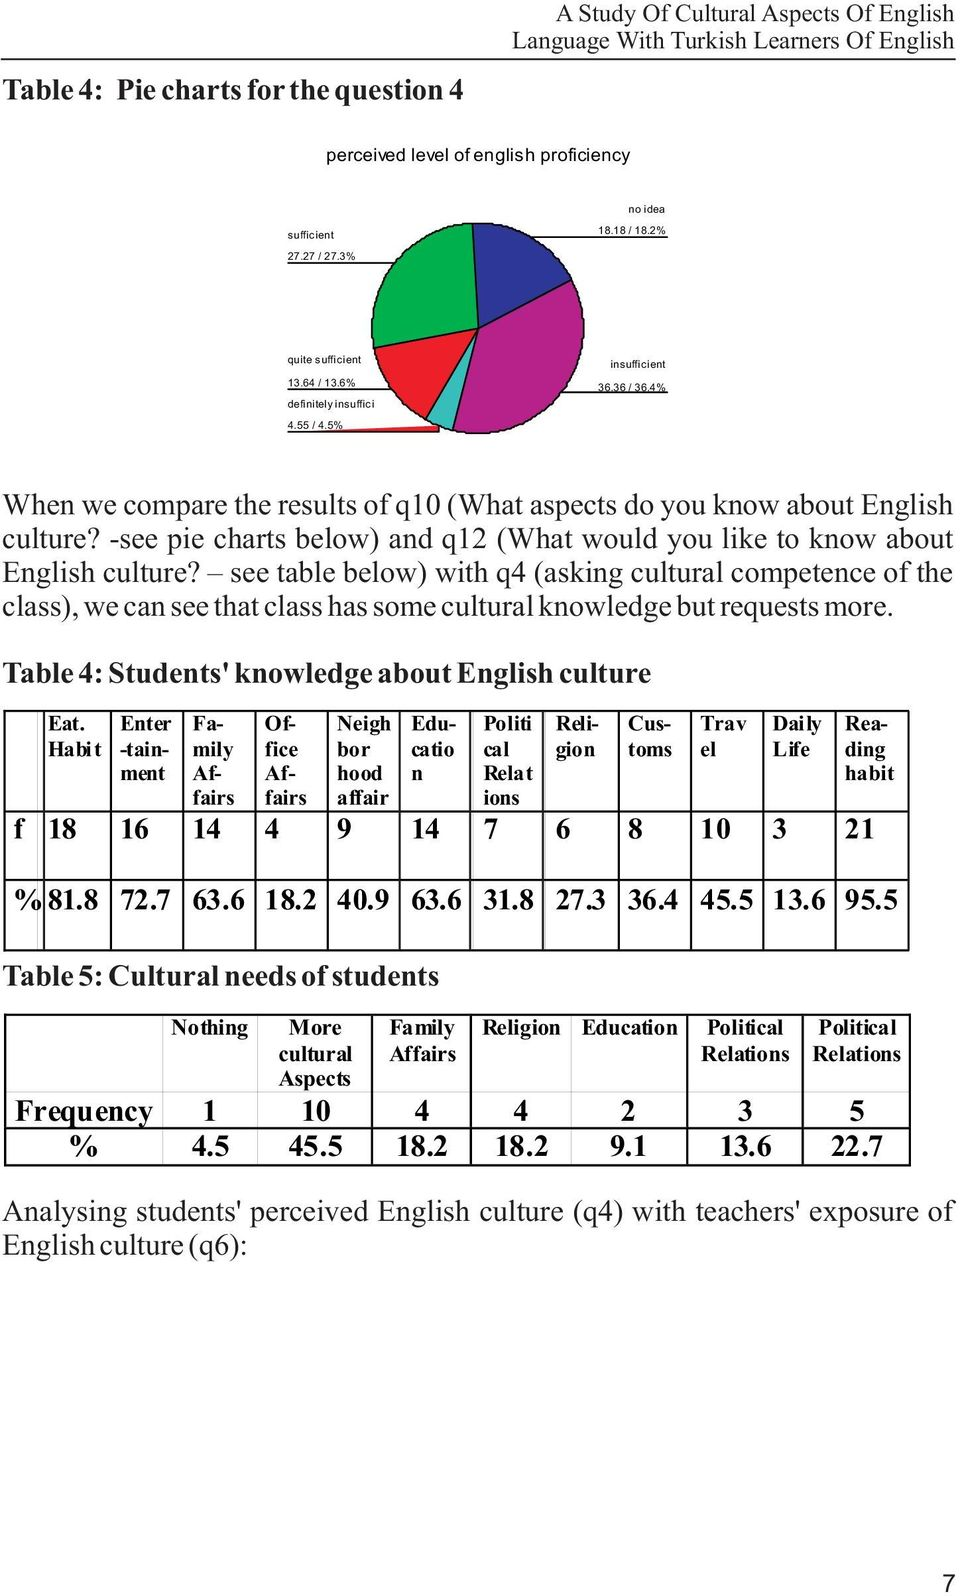 -see pie charts below) and q1 (What would you like to know about English culture?